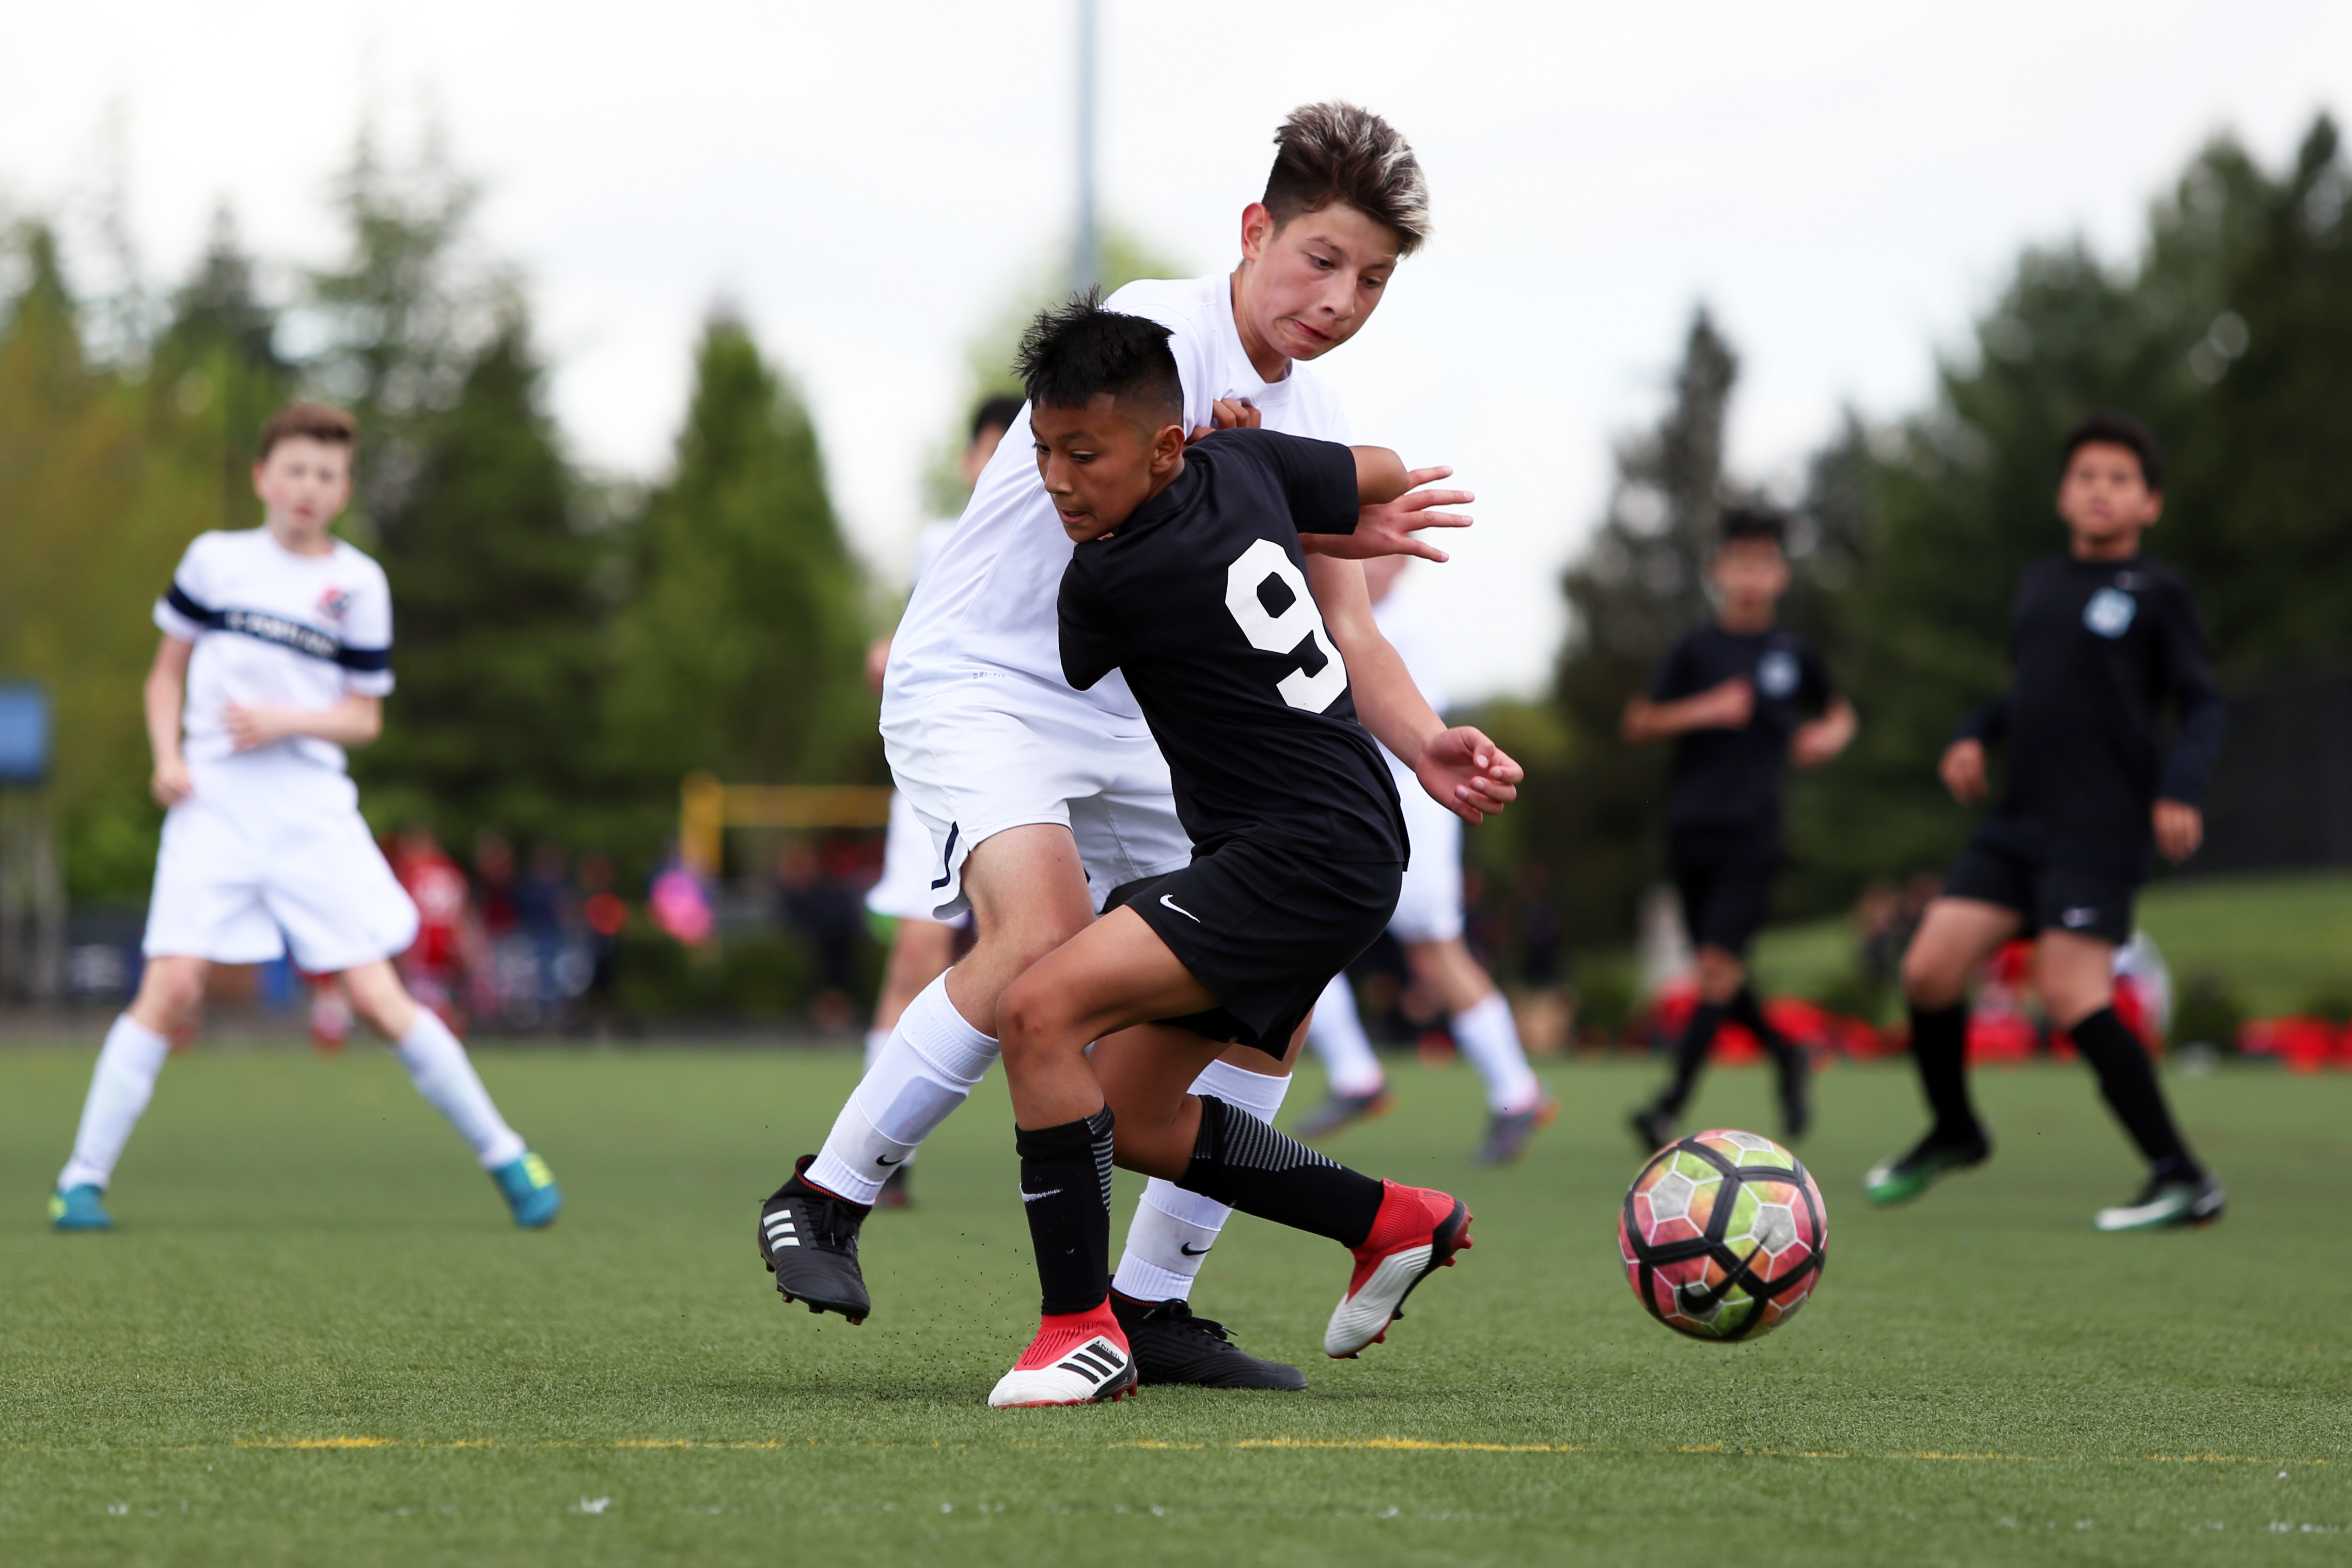 Changing soccer culture